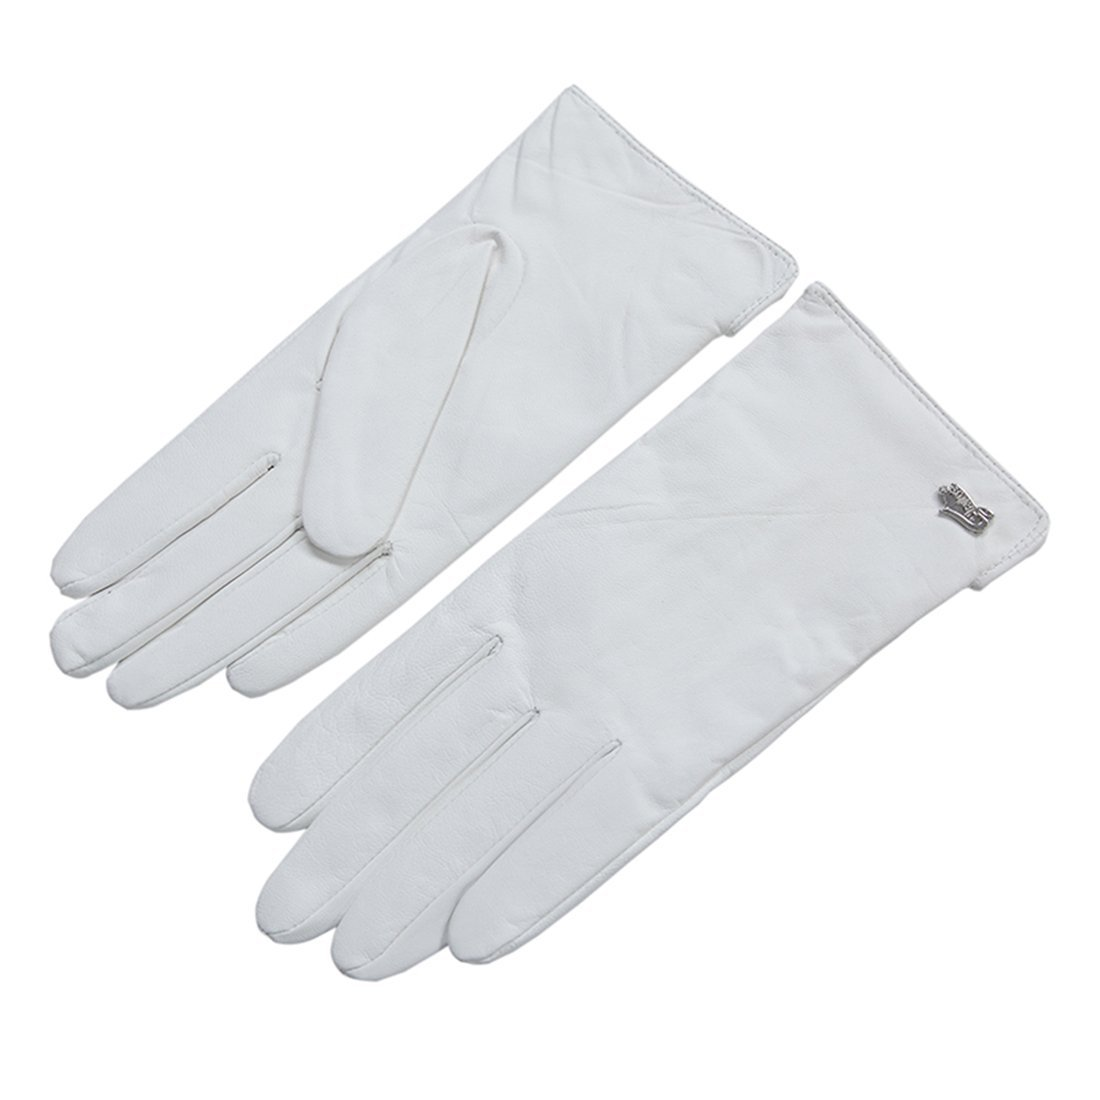 Nappaglo Nappa Leather Gloves Warm Lining Winter Multicolor Imported Leather Lambskin Gloves for Women (L, White)